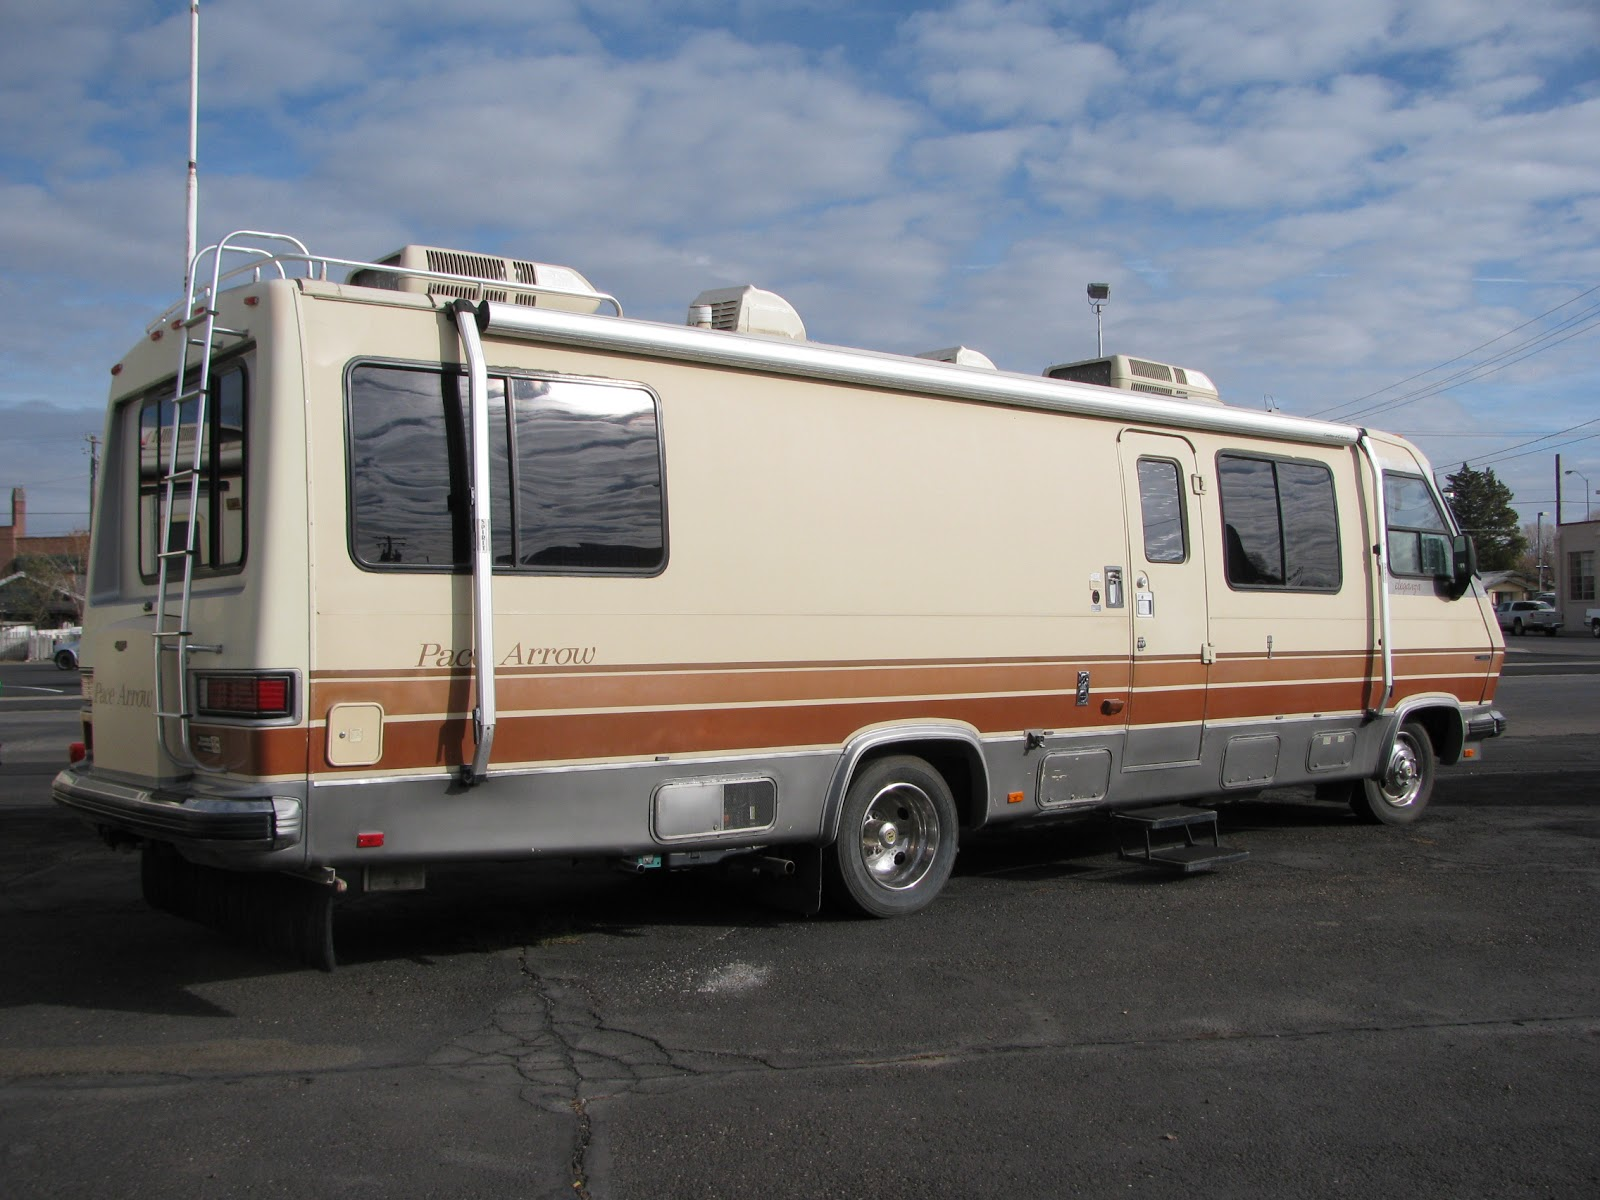 1988 Pace Arrow Motorhome http://timemachinescollectableautos.blogspot.com/2012/11/1988-pace-arrow-laganza-32-ft-454-chevy.html